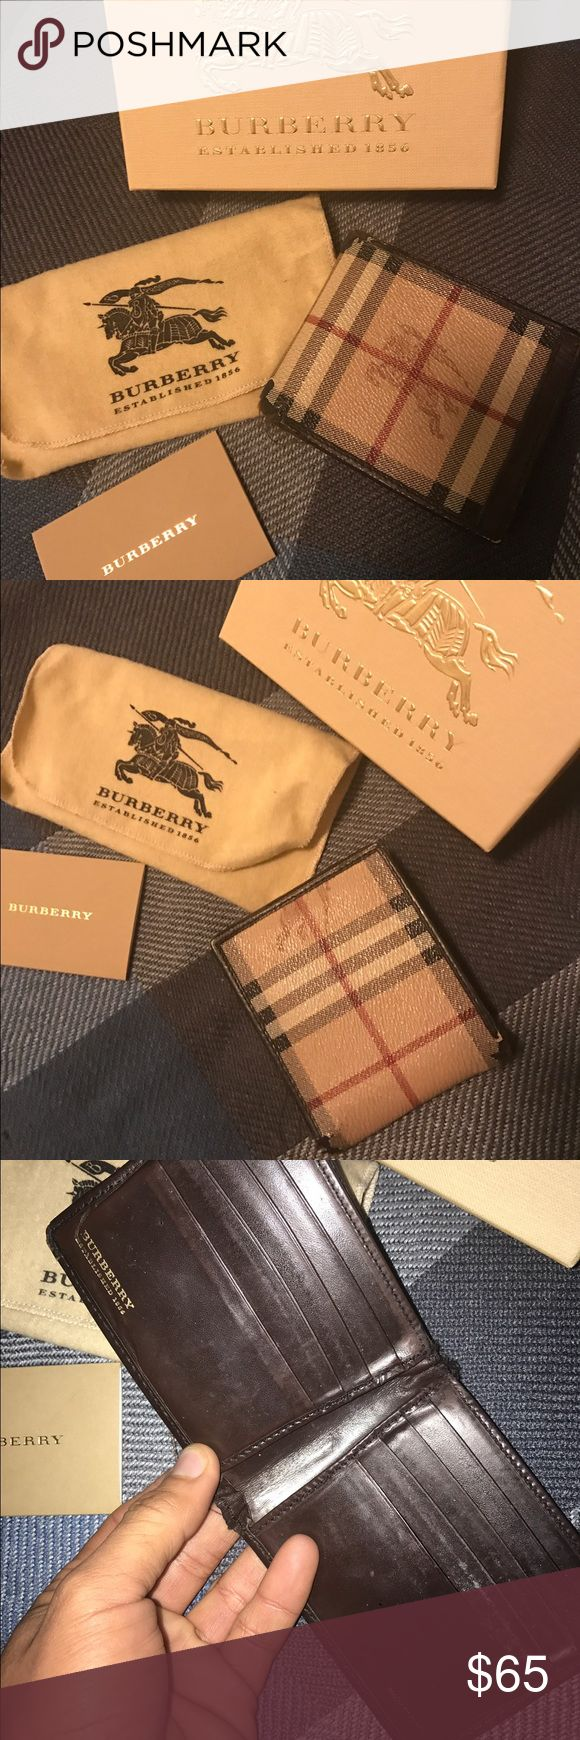 Authentic Burberry Wallet Men's Burberry Wallet Classic Haymarket check -8 slots for Credit card and also cash slot. Pre loved and does have some wear and tear -see photos for corners. Still has a lot of love for that Burberry lover. No box or bag included however will package up safely Burberry Accessories Key & Card Holders